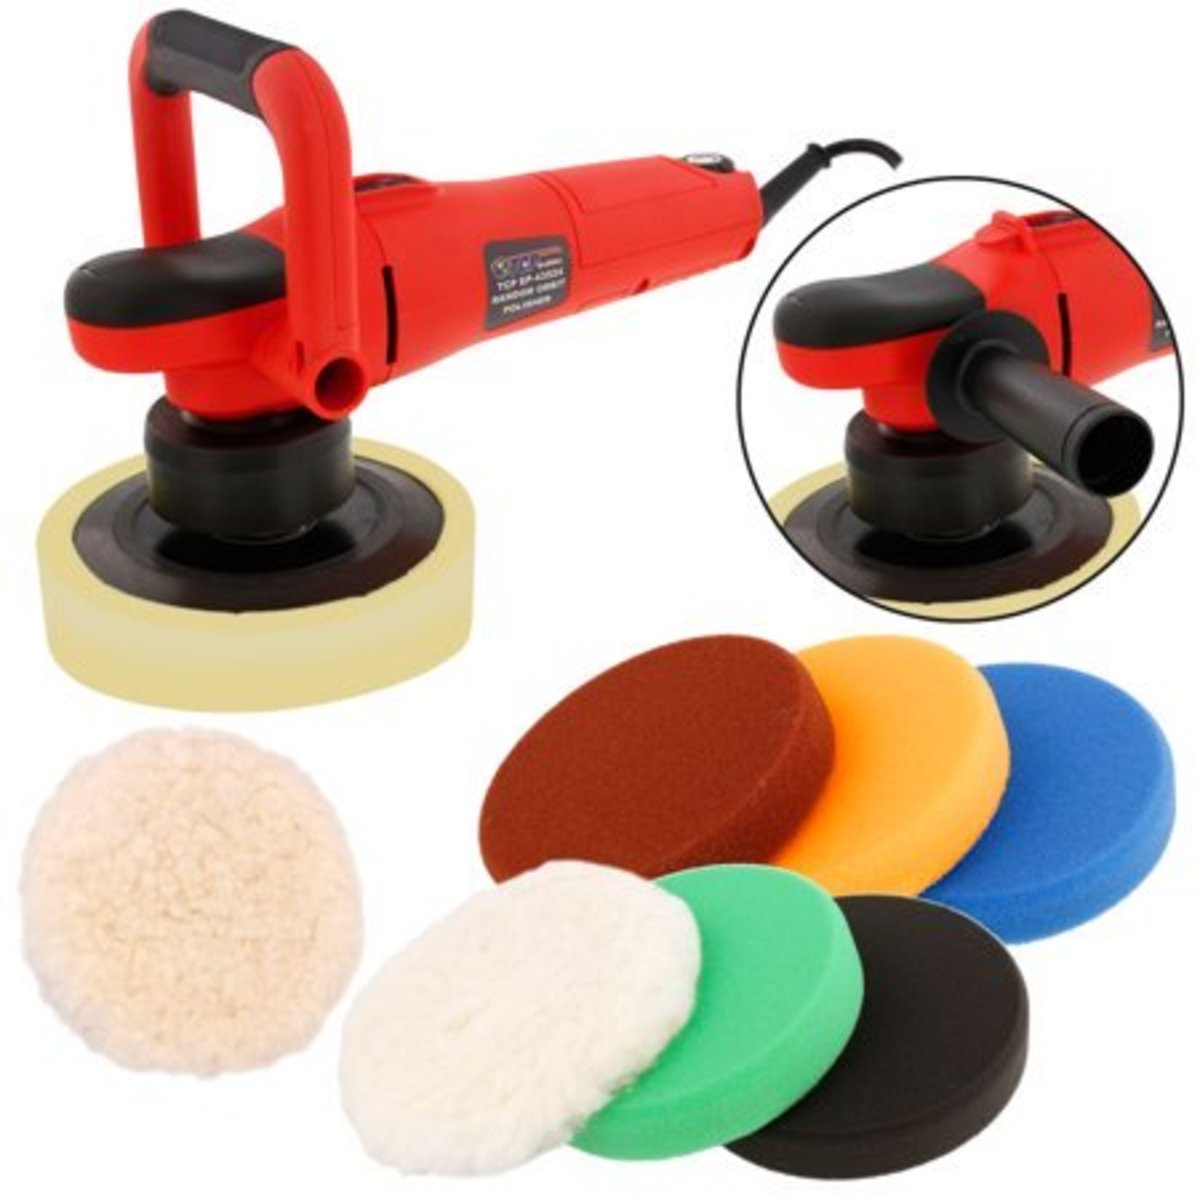 Polisher and Pads